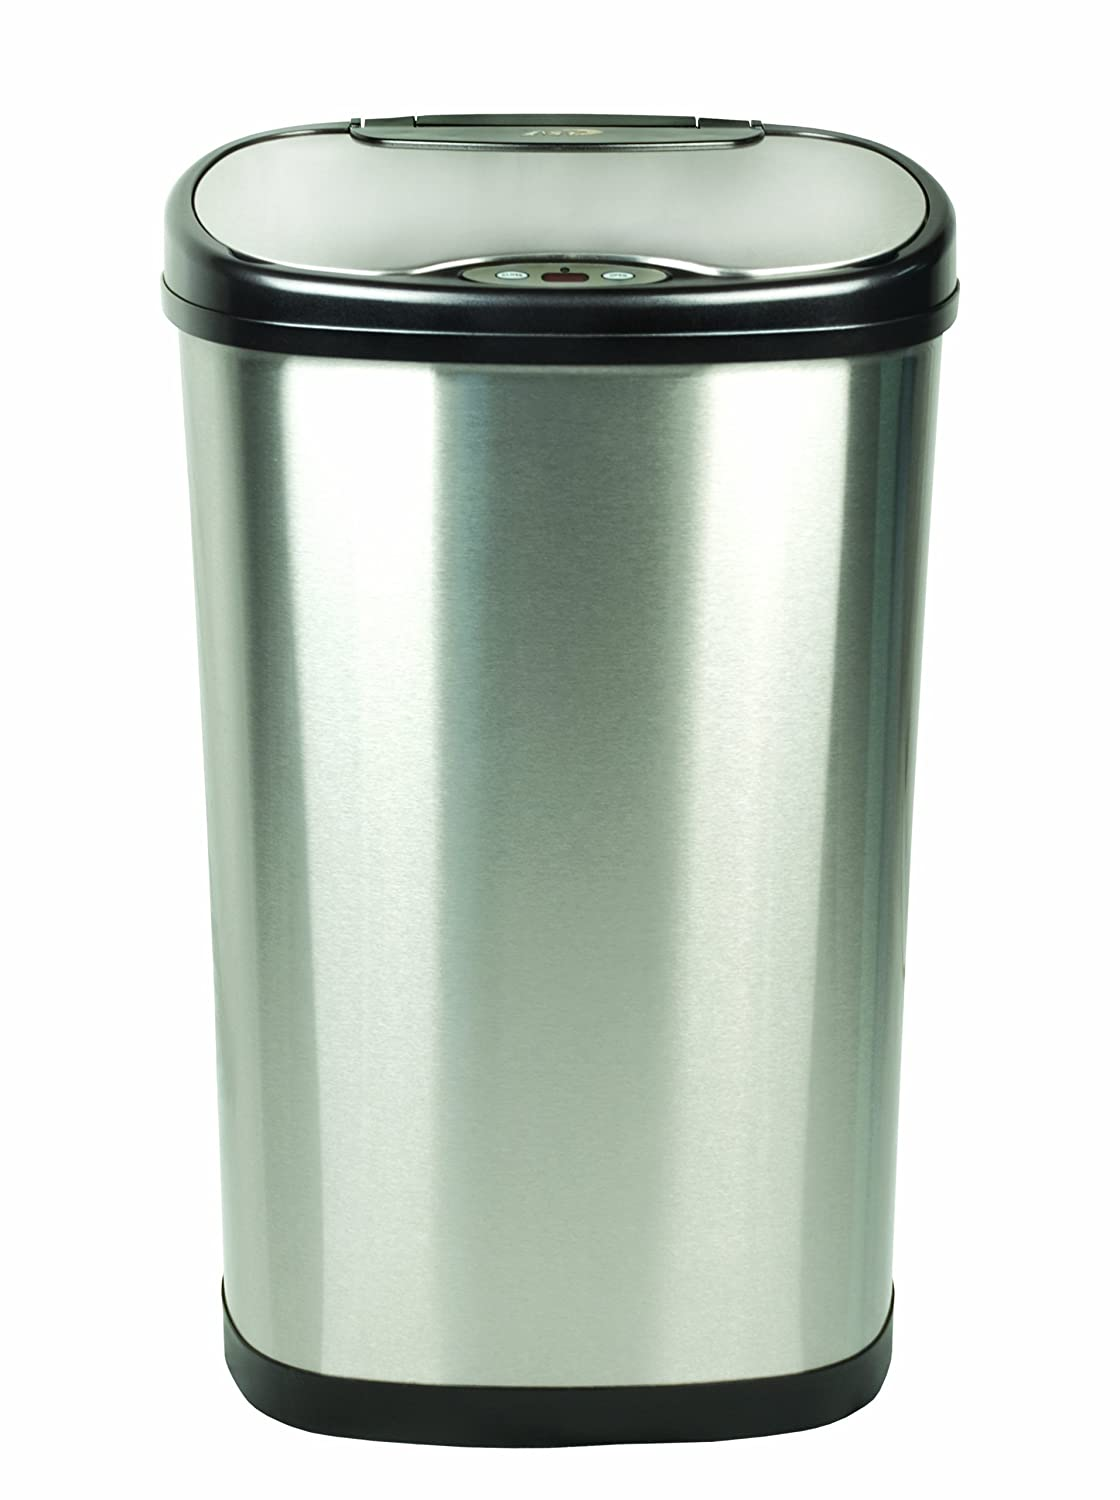 Kitchen Garbage Can Amazoncom Ninestars Dzt 50 13 The Original Touchless Automatic